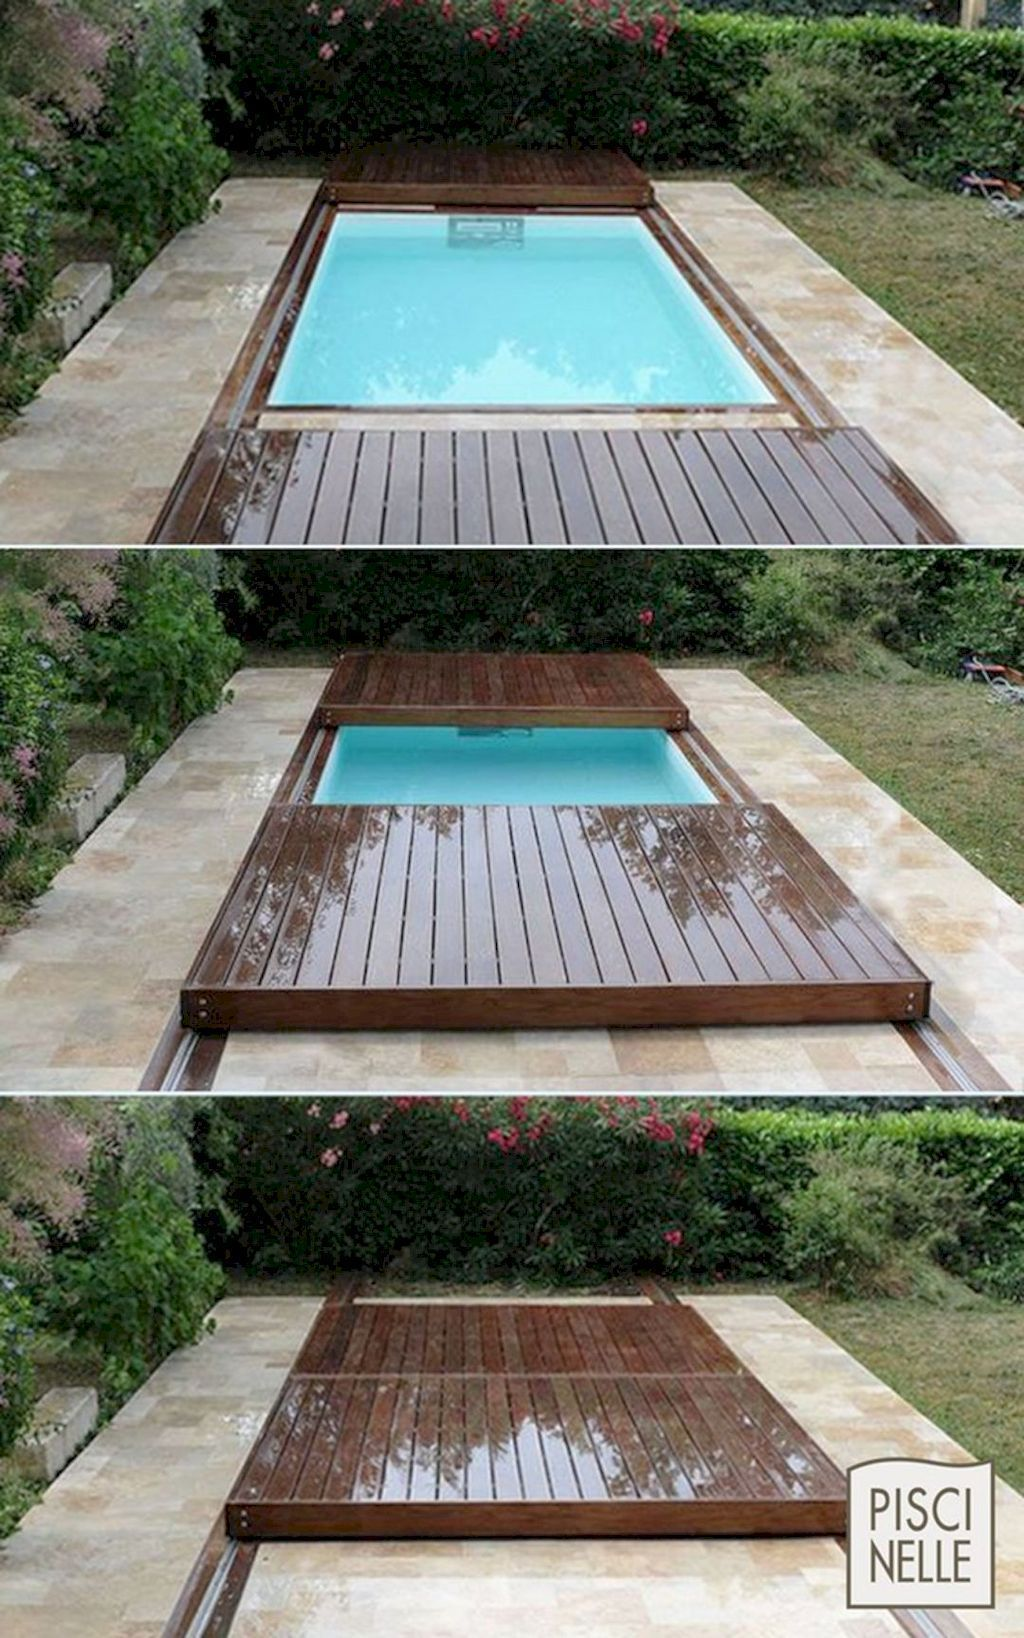 Future Pool Abdeckung Protect Swimming Pool Ideas For A Small Backyard 60 Great Outdoors In